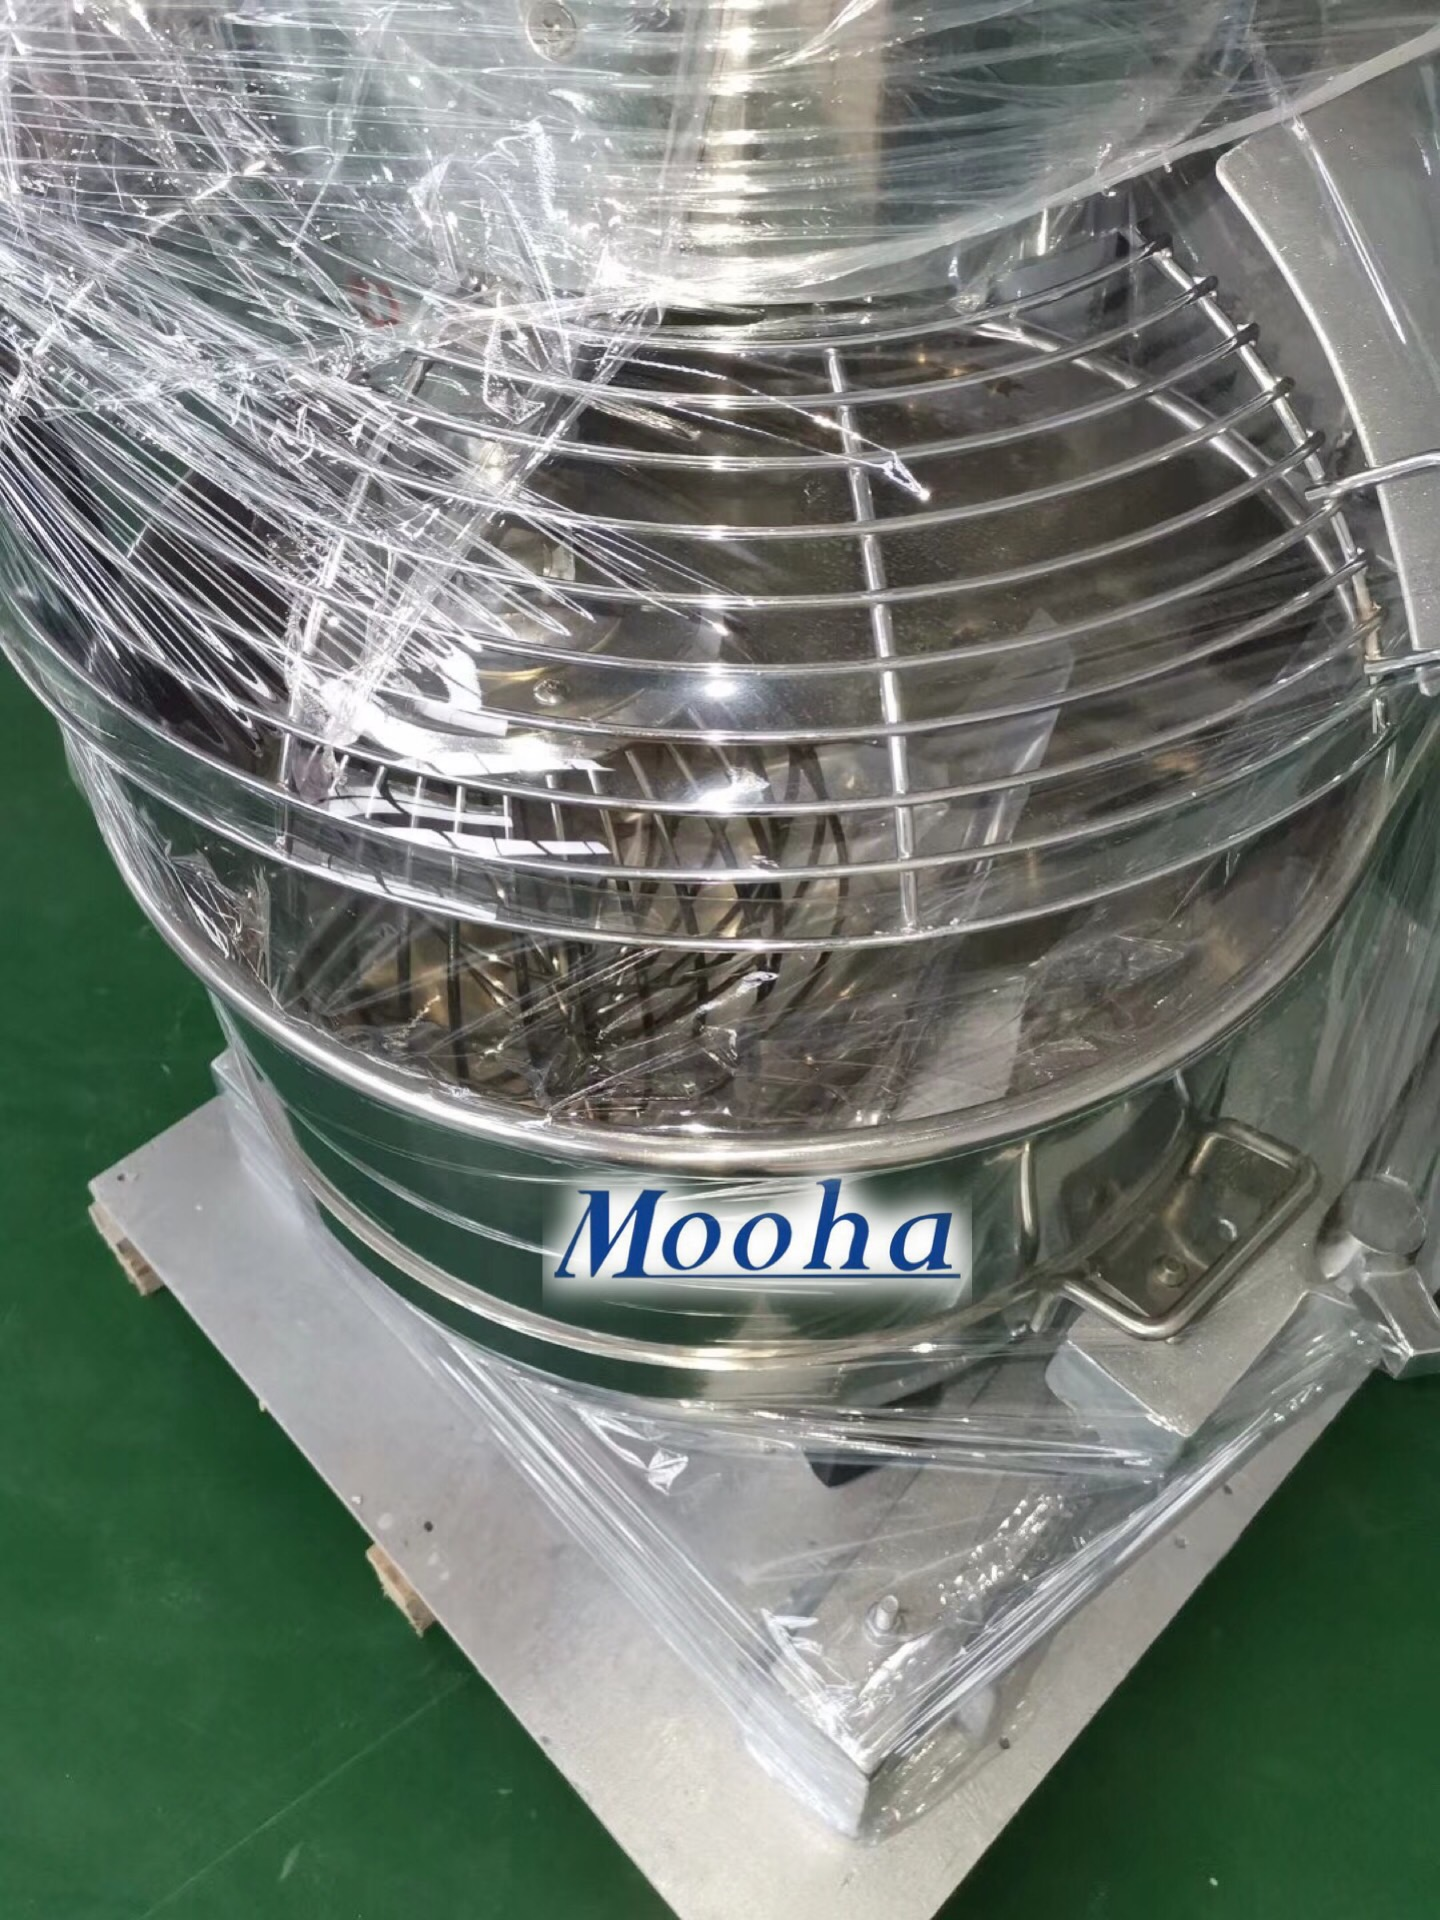 Commercial 50 Liters Planetary Mixer High Quality 5-9 KG powder Kneading Cake Biscuits Cookies Cream Egg Butter Mixing Bakery Machine